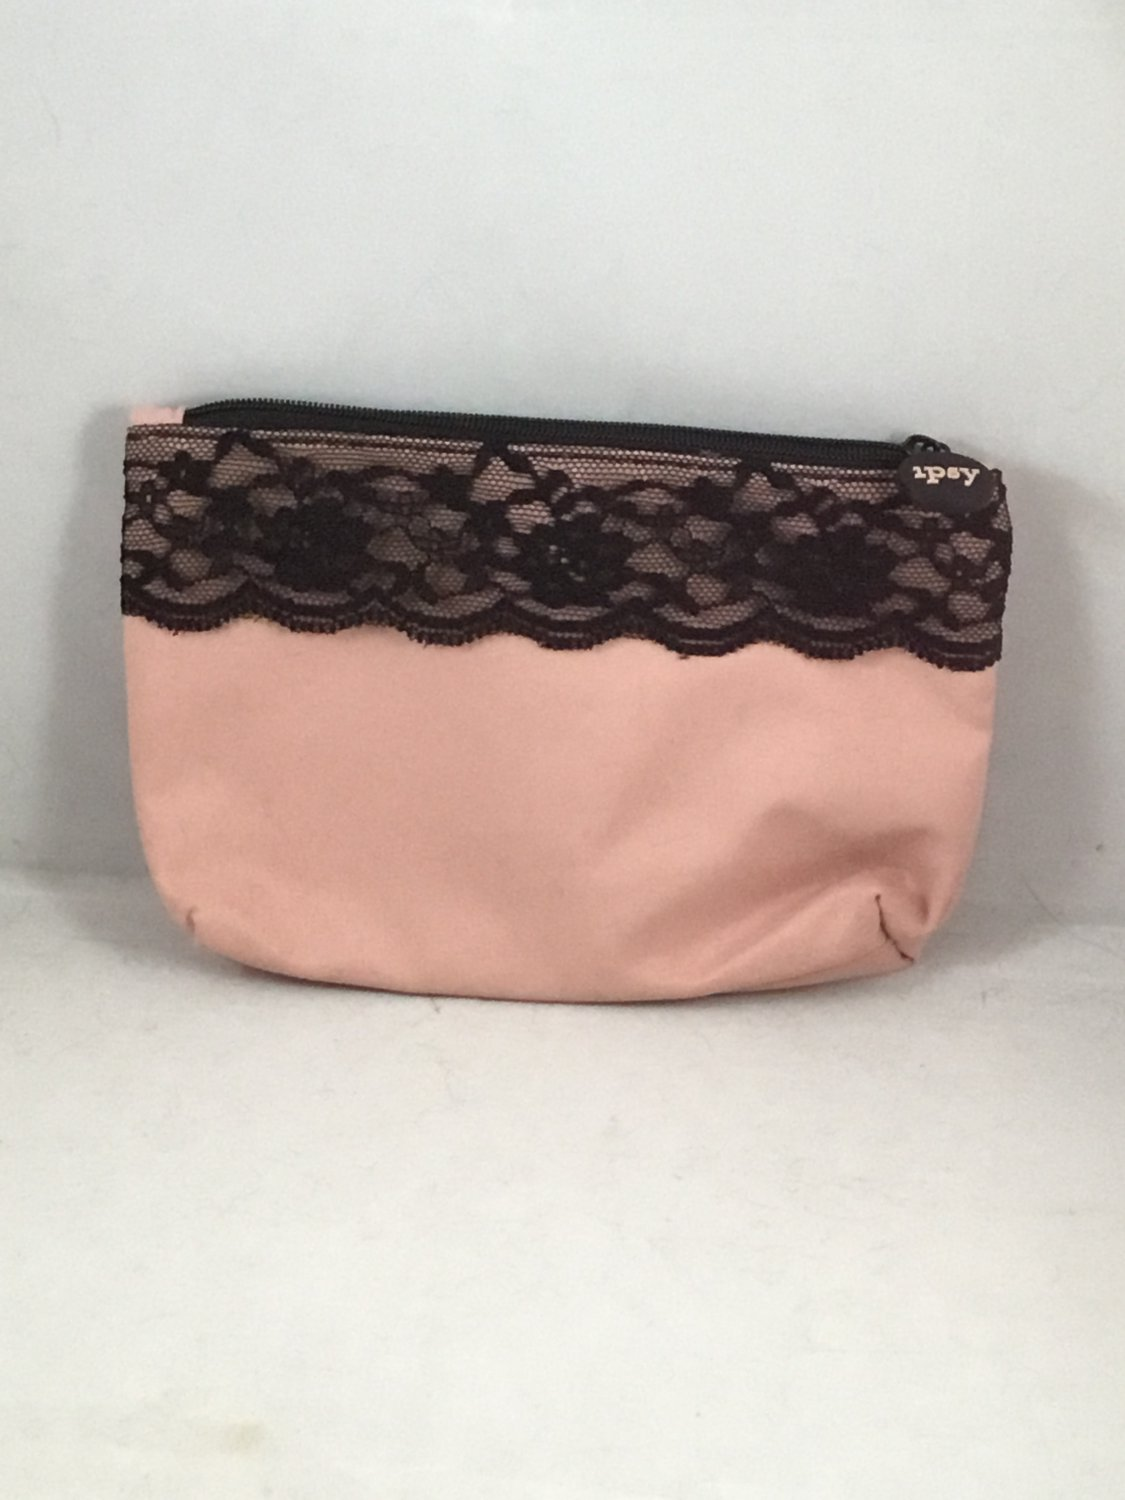 Ipsy MyGlam Glam Bag February 2018 Unzipped Cosmetic case purse Pink Black Lace